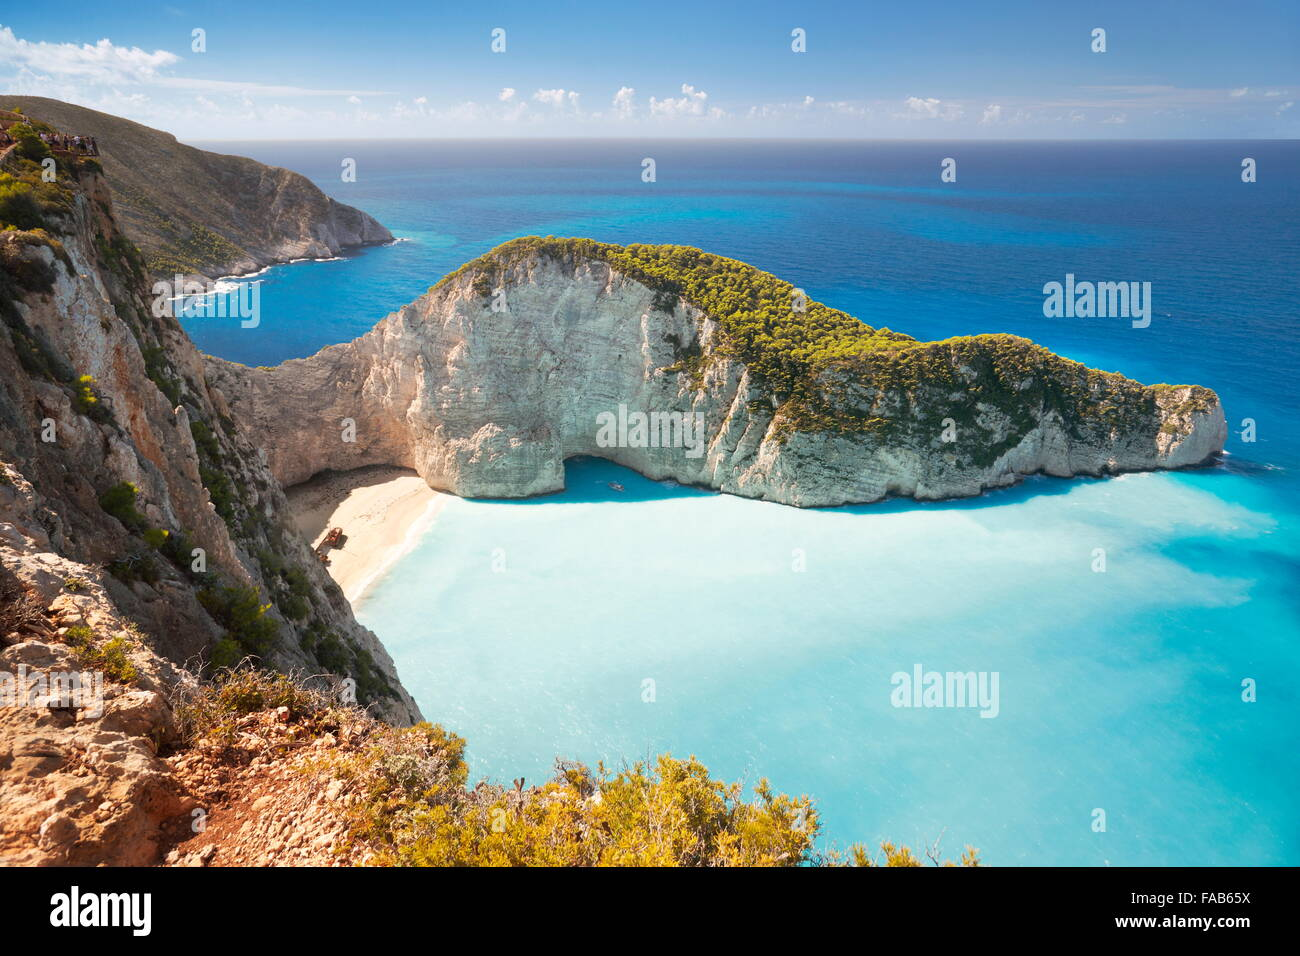 Grèce - Zakynthos, Shipwreck Cove, plage de Navagio Photo Stock